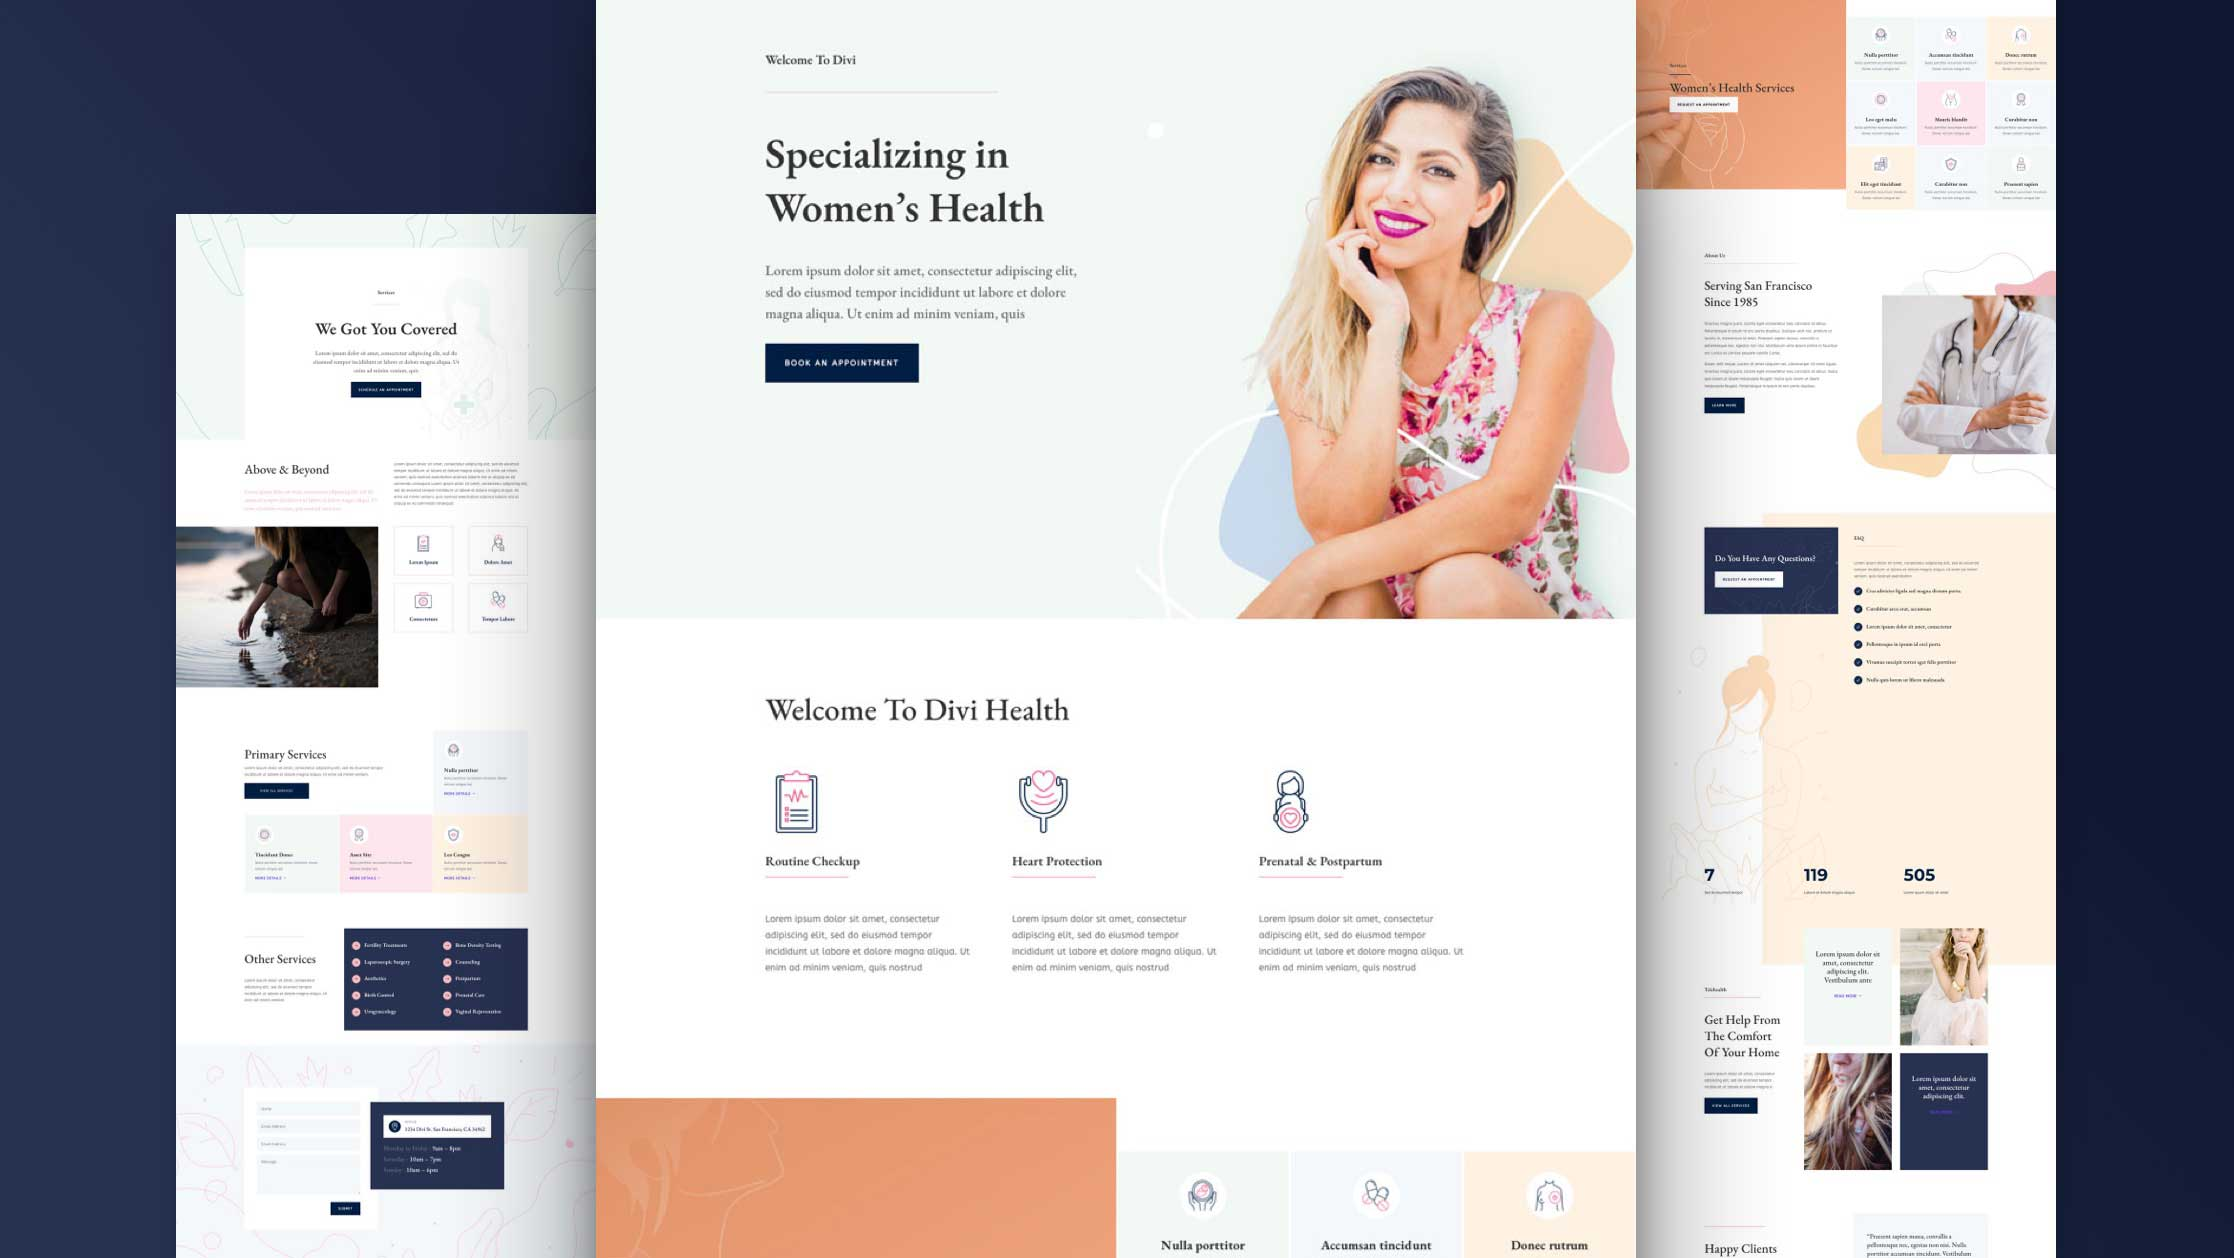 Get a FREE Women's Health Center Layout Pack for Divi